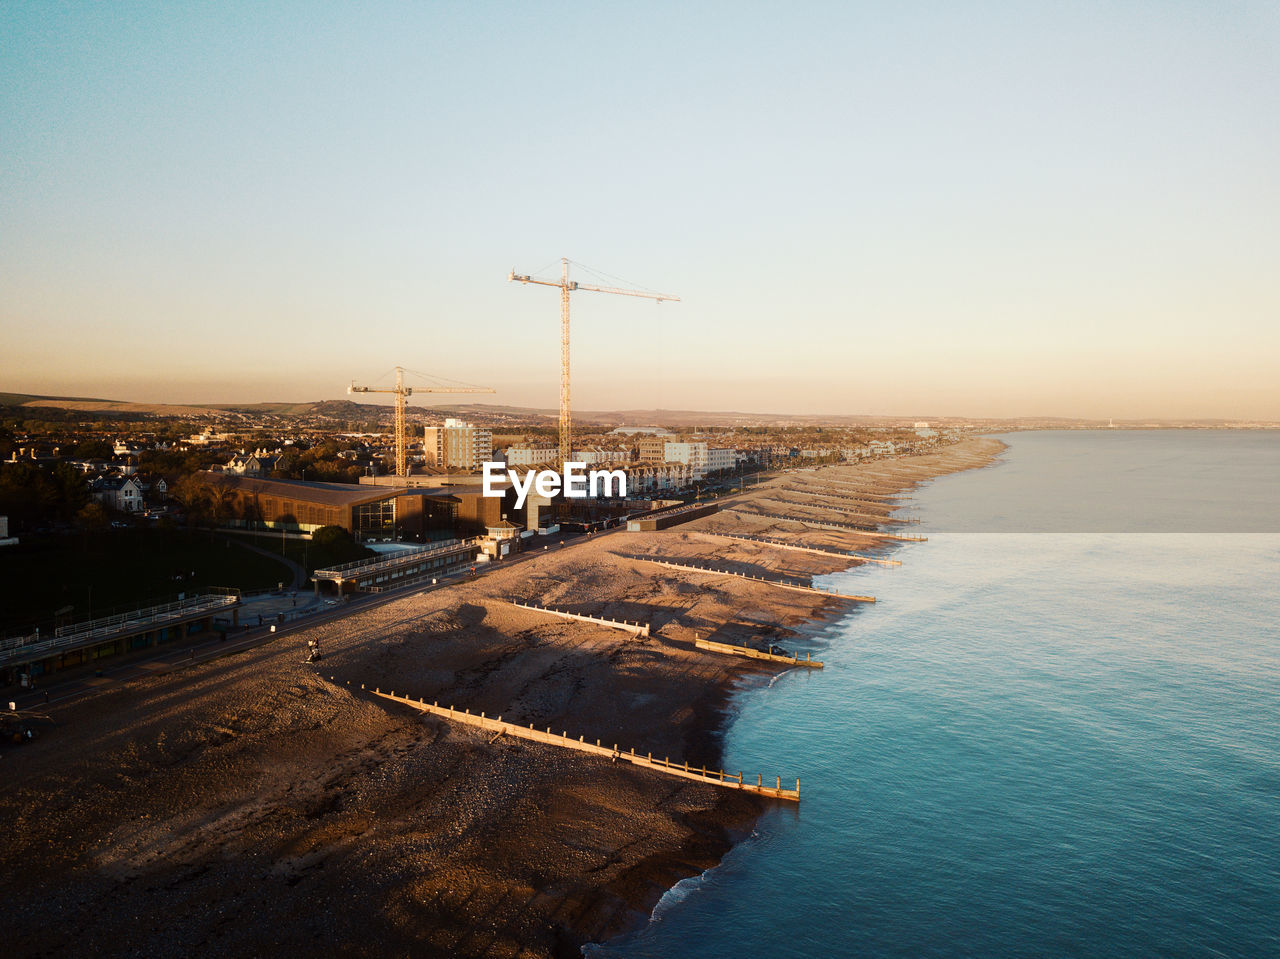 sky, water, architecture, nature, built structure, sea, sunset, clear sky, building exterior, no people, outdoors, industry, high angle view, tranquil scene, copy space, scenics - nature, day, horizon, fuel and power generation, construction equipment